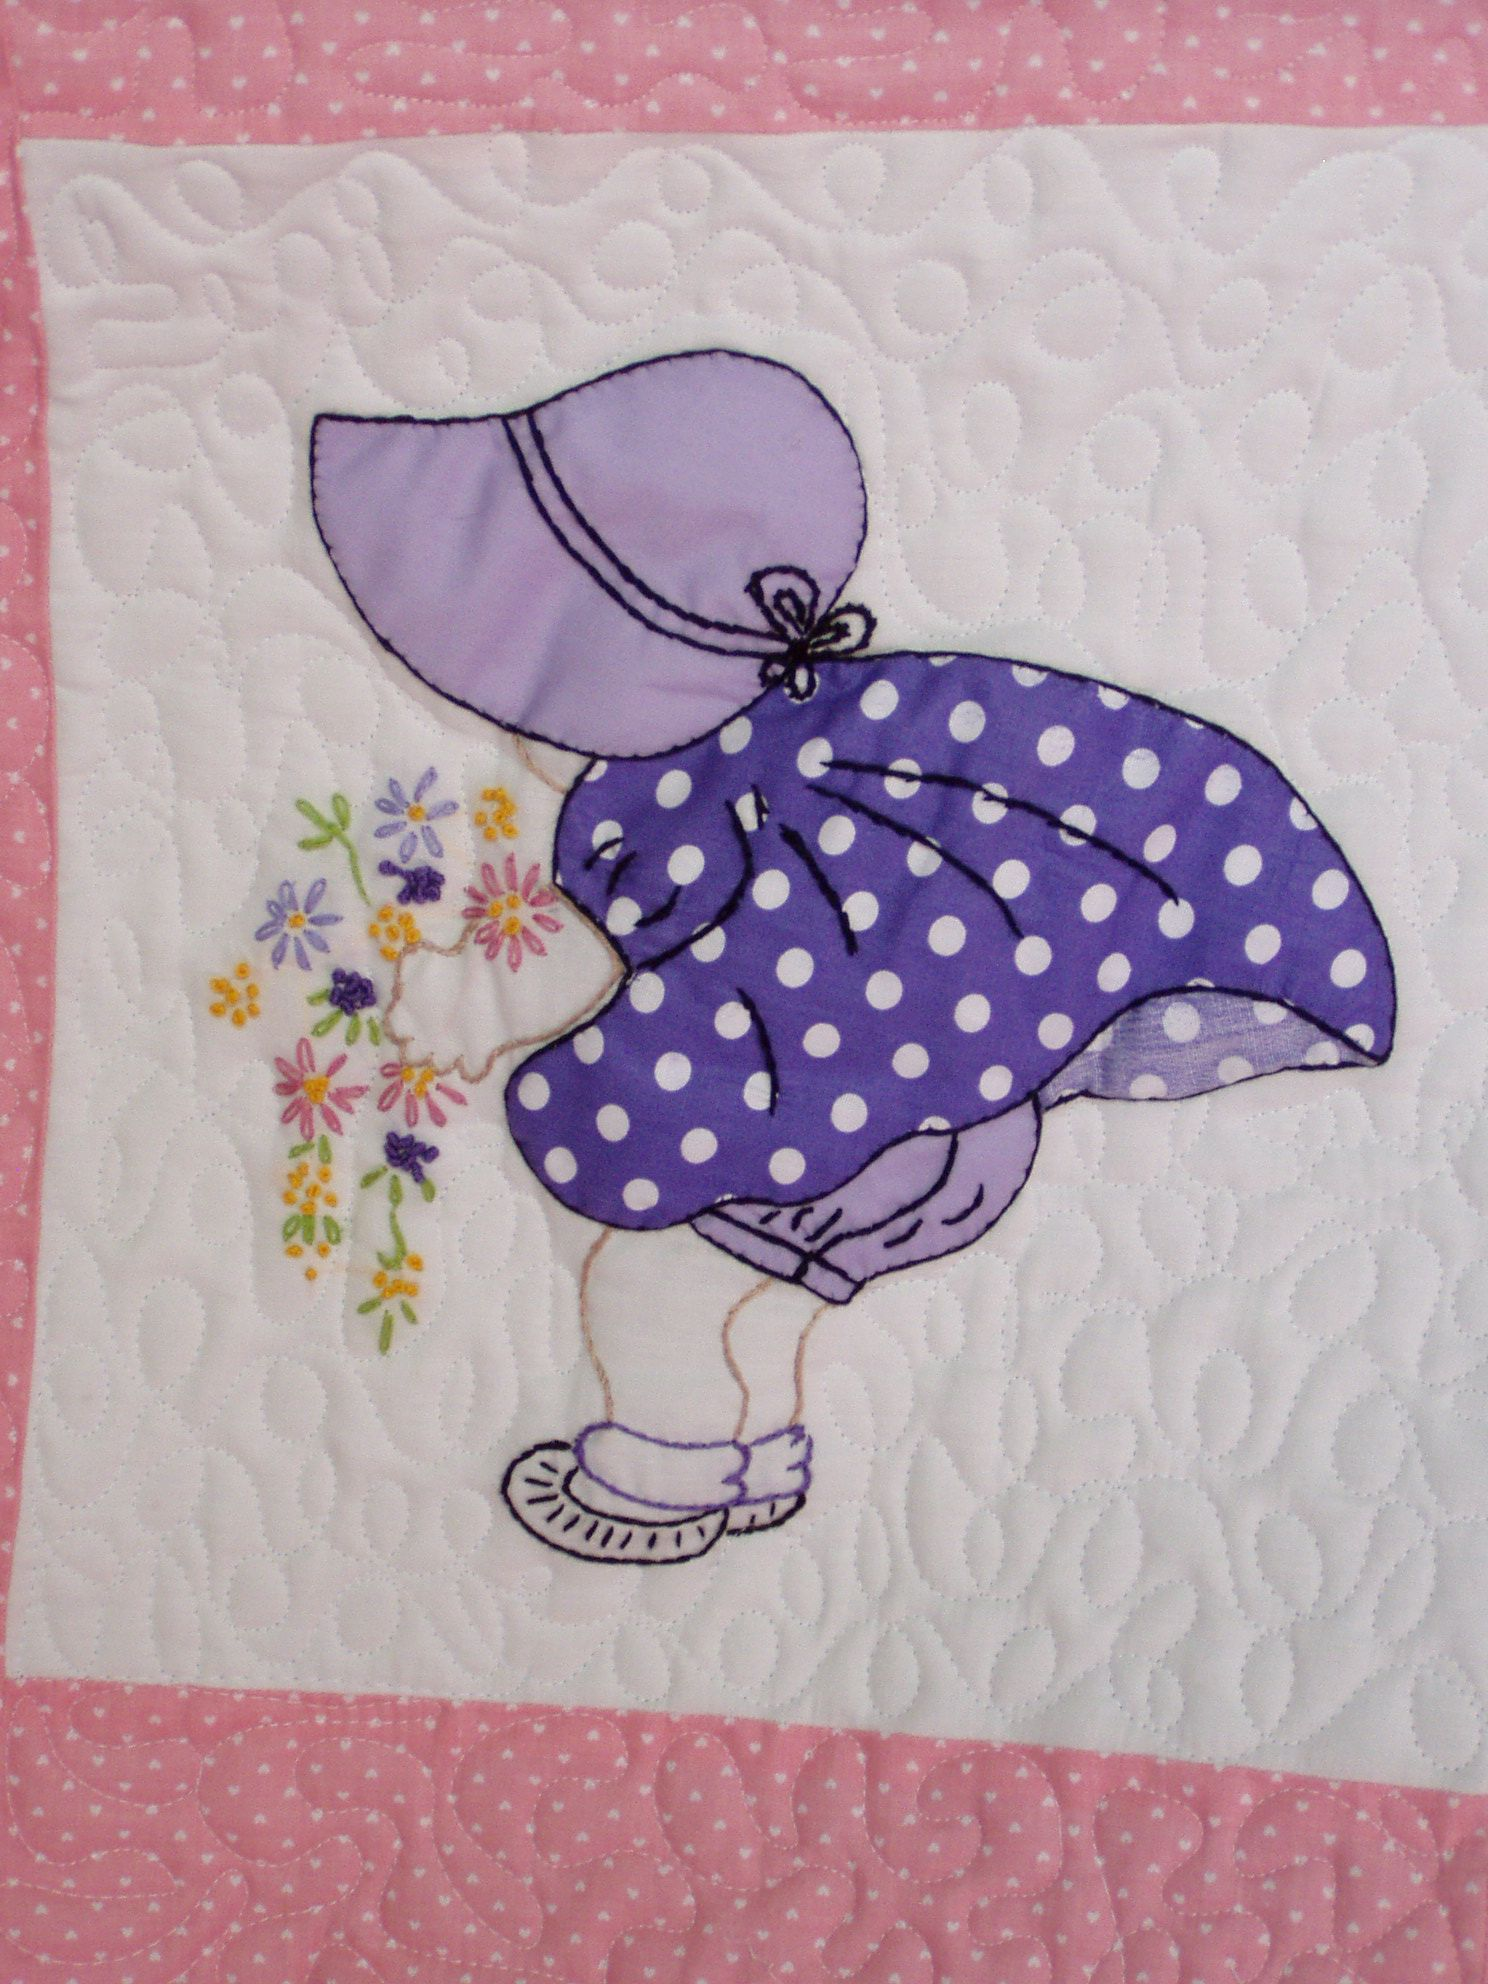 Sun bonnet sue quilt patterns free - Bing Images #sunbonnetsue